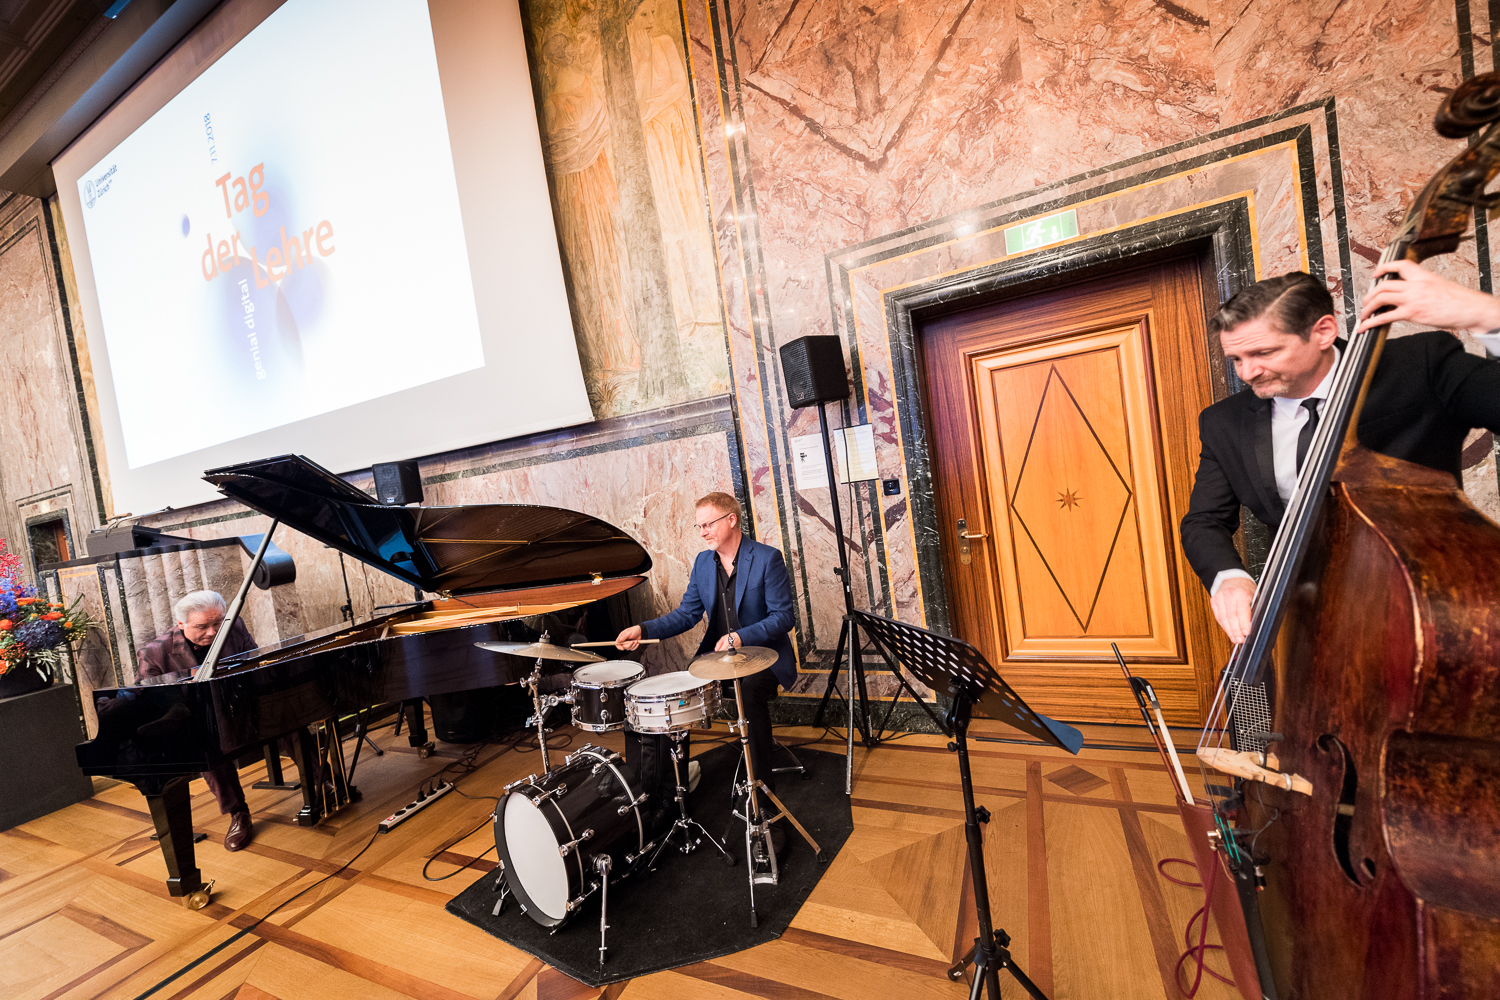 <p>The <em>Tag der Lehre</em> closing event was rounded off by the cool jazz sounds of the Dave Ruosch Trio. (Image: Frank Br&uuml;derli)</p>